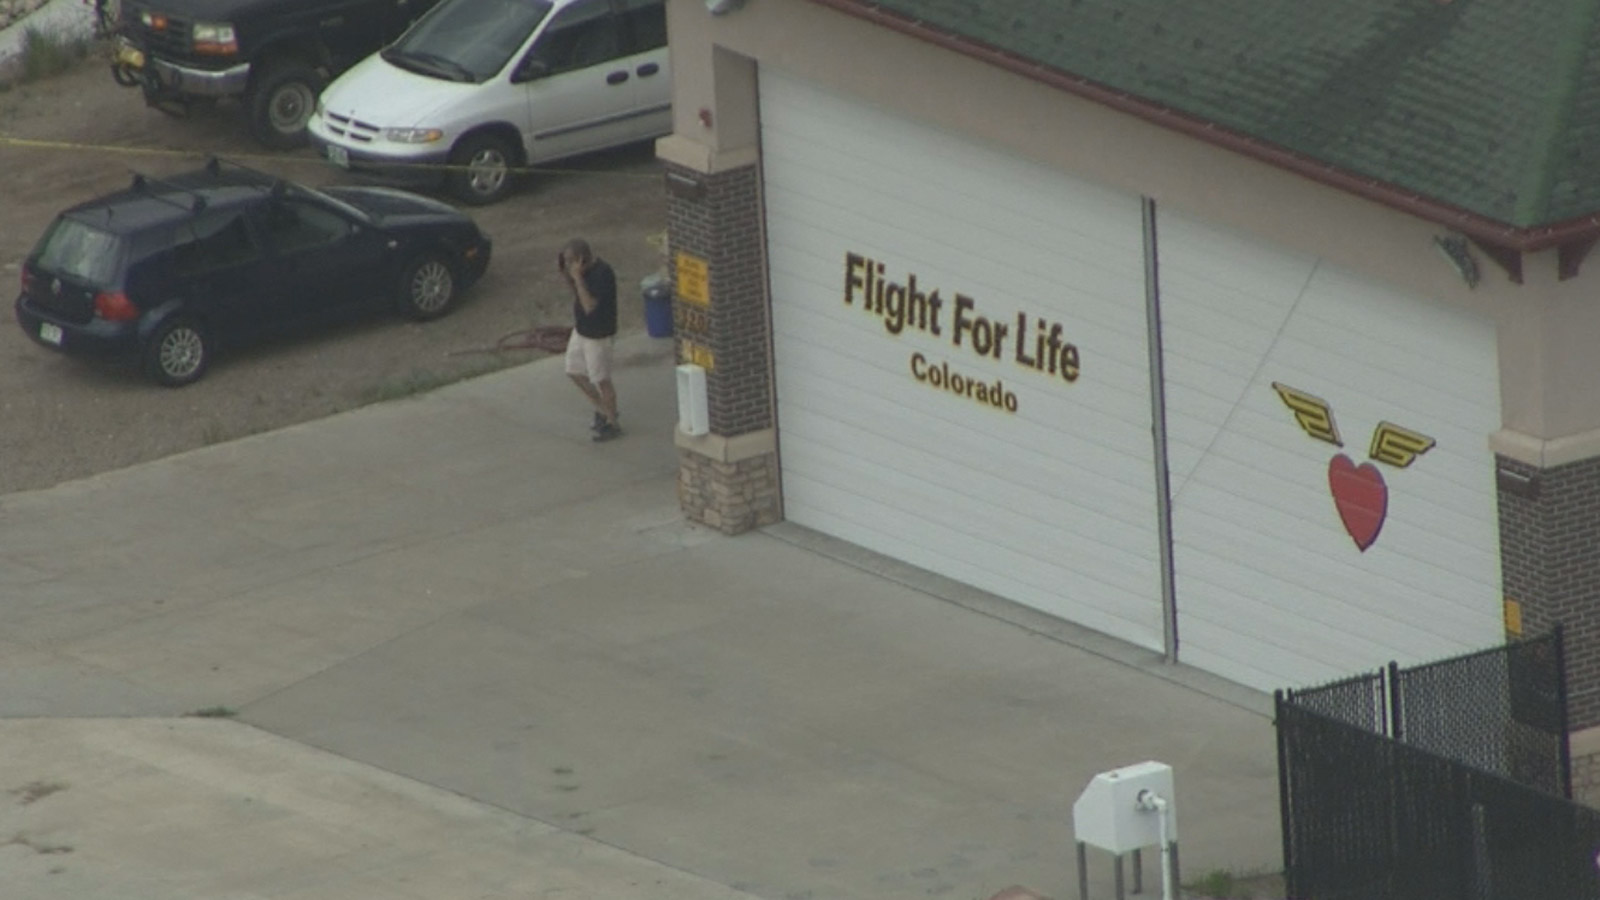 The Flight for Life garage at St. Anthony's Summit Medical Center in Frisco (credit: CBS)